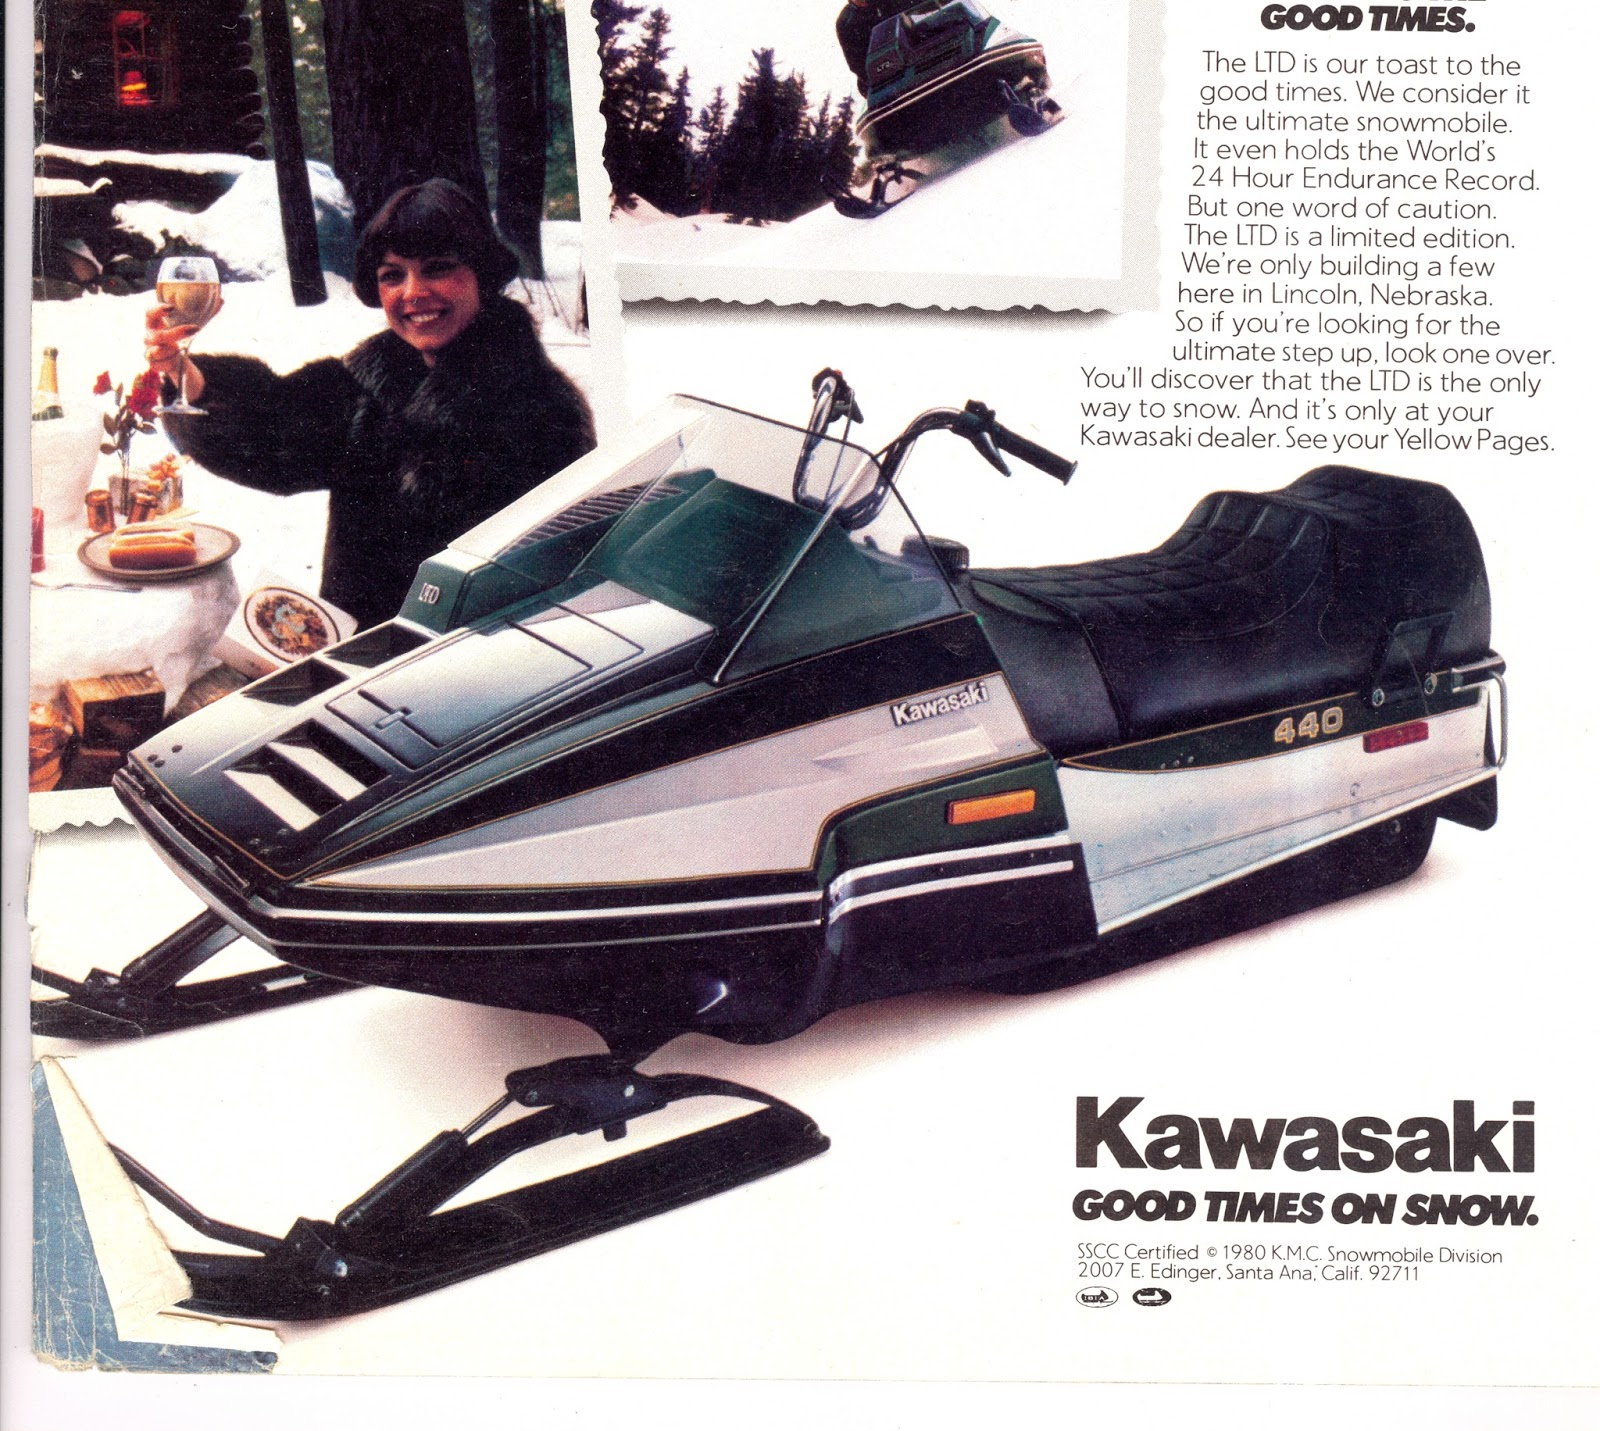 CLASSIC SNOWMOBILES OF THE PAST: 1981 KAWASAKI LTD SNOWMOBILE